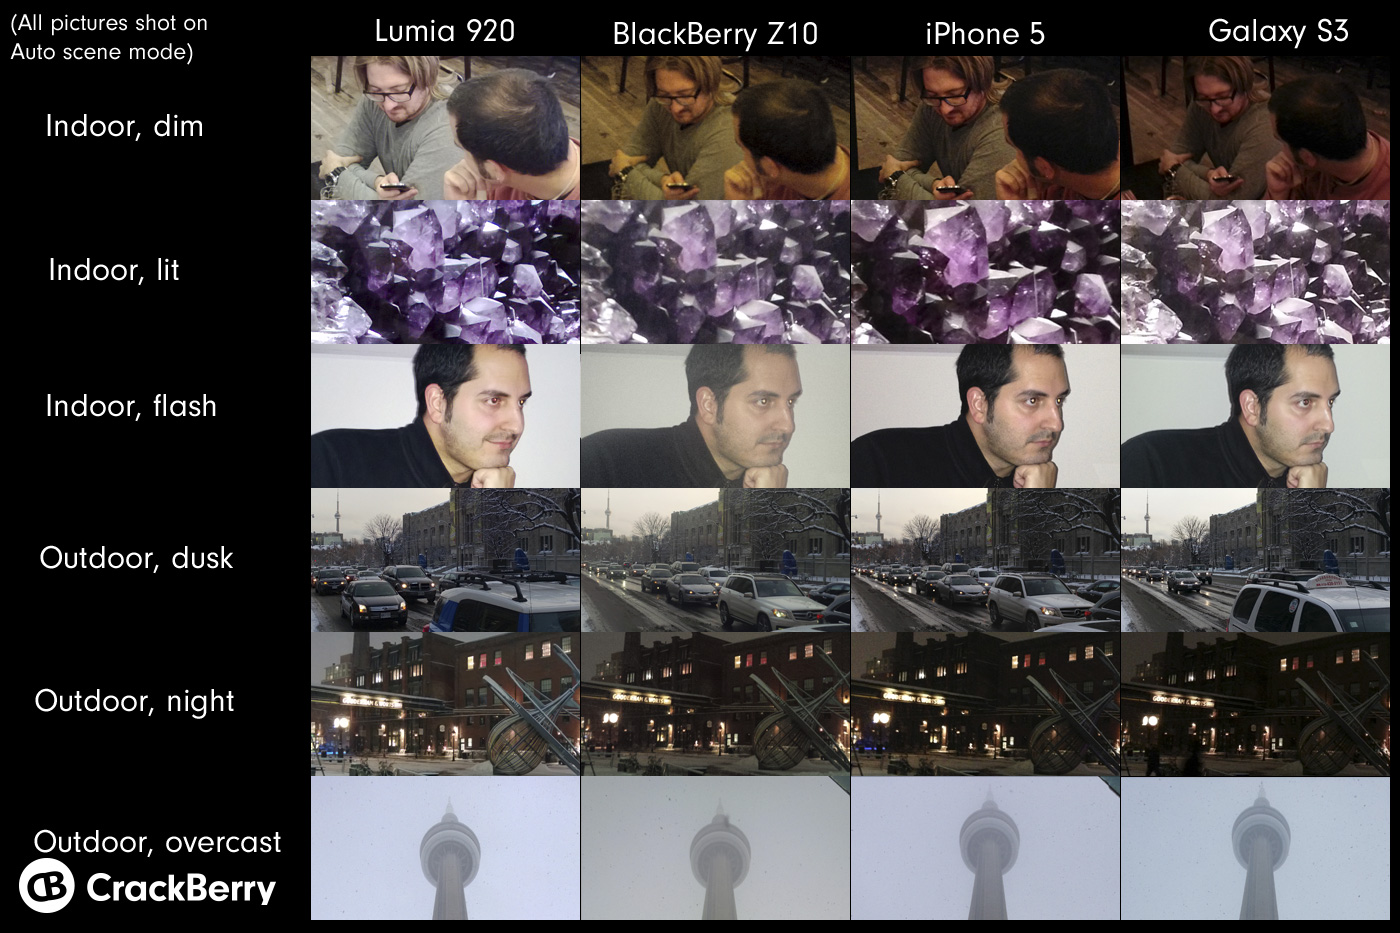 Nokia Lumia 920 low light comparison vs iphone5 galaxy s3 & bb z10